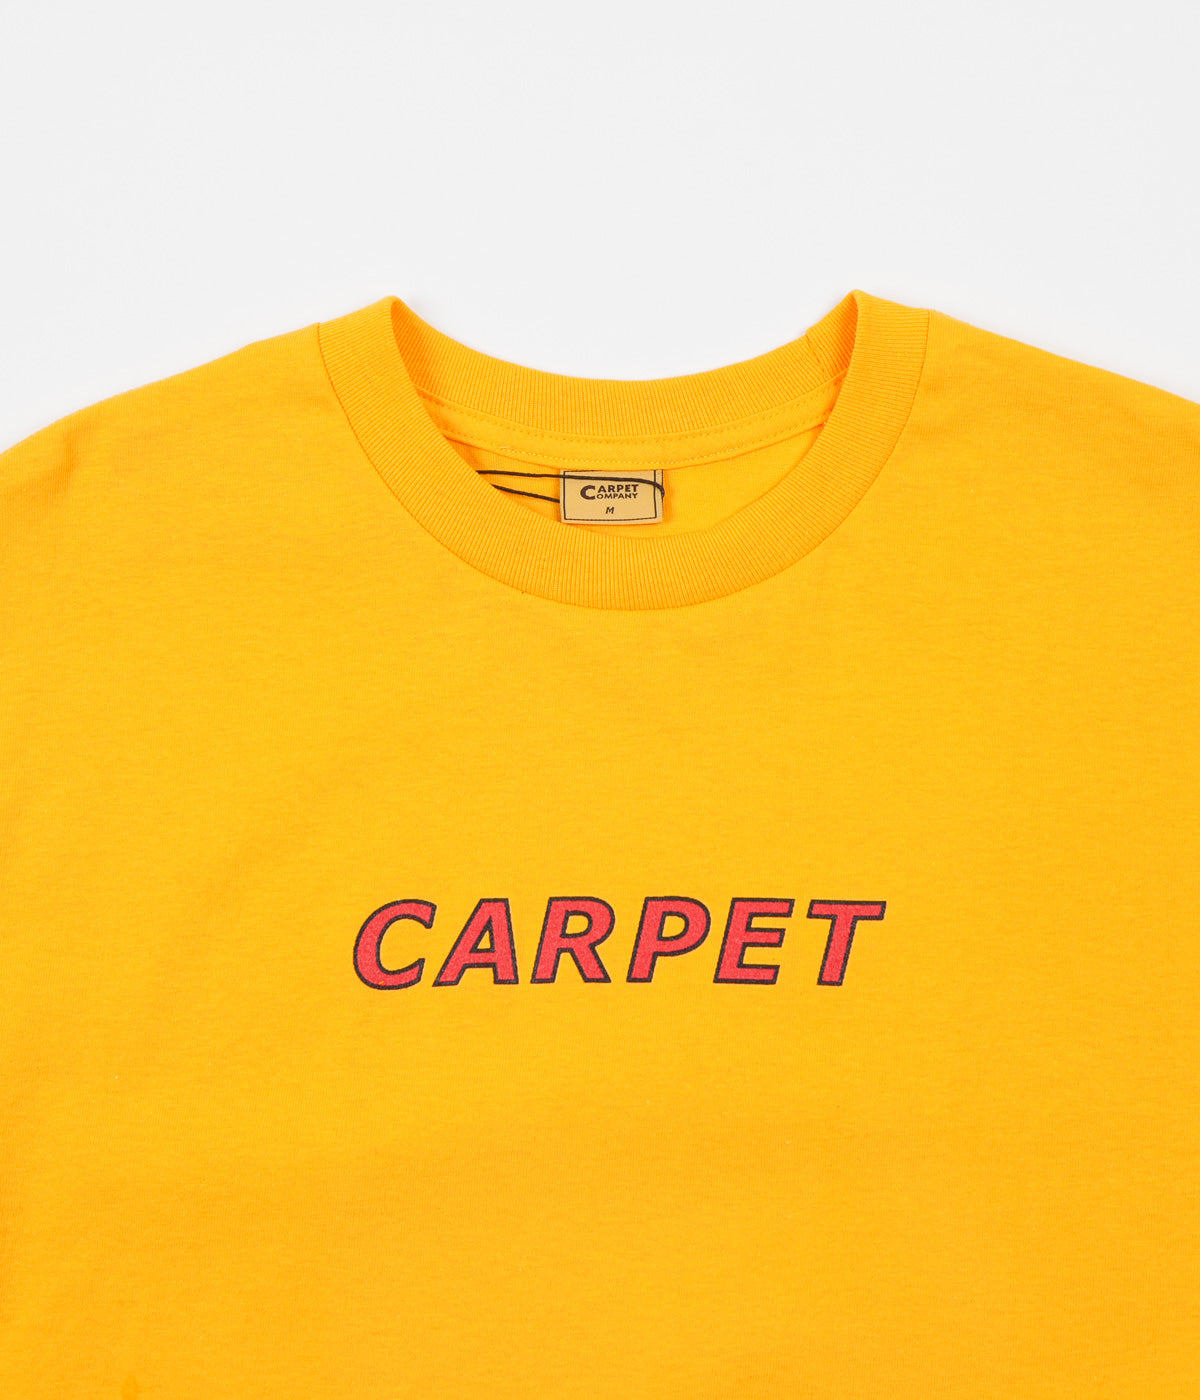 Carpet Co. Change Your Mind T-Shirt - Gold